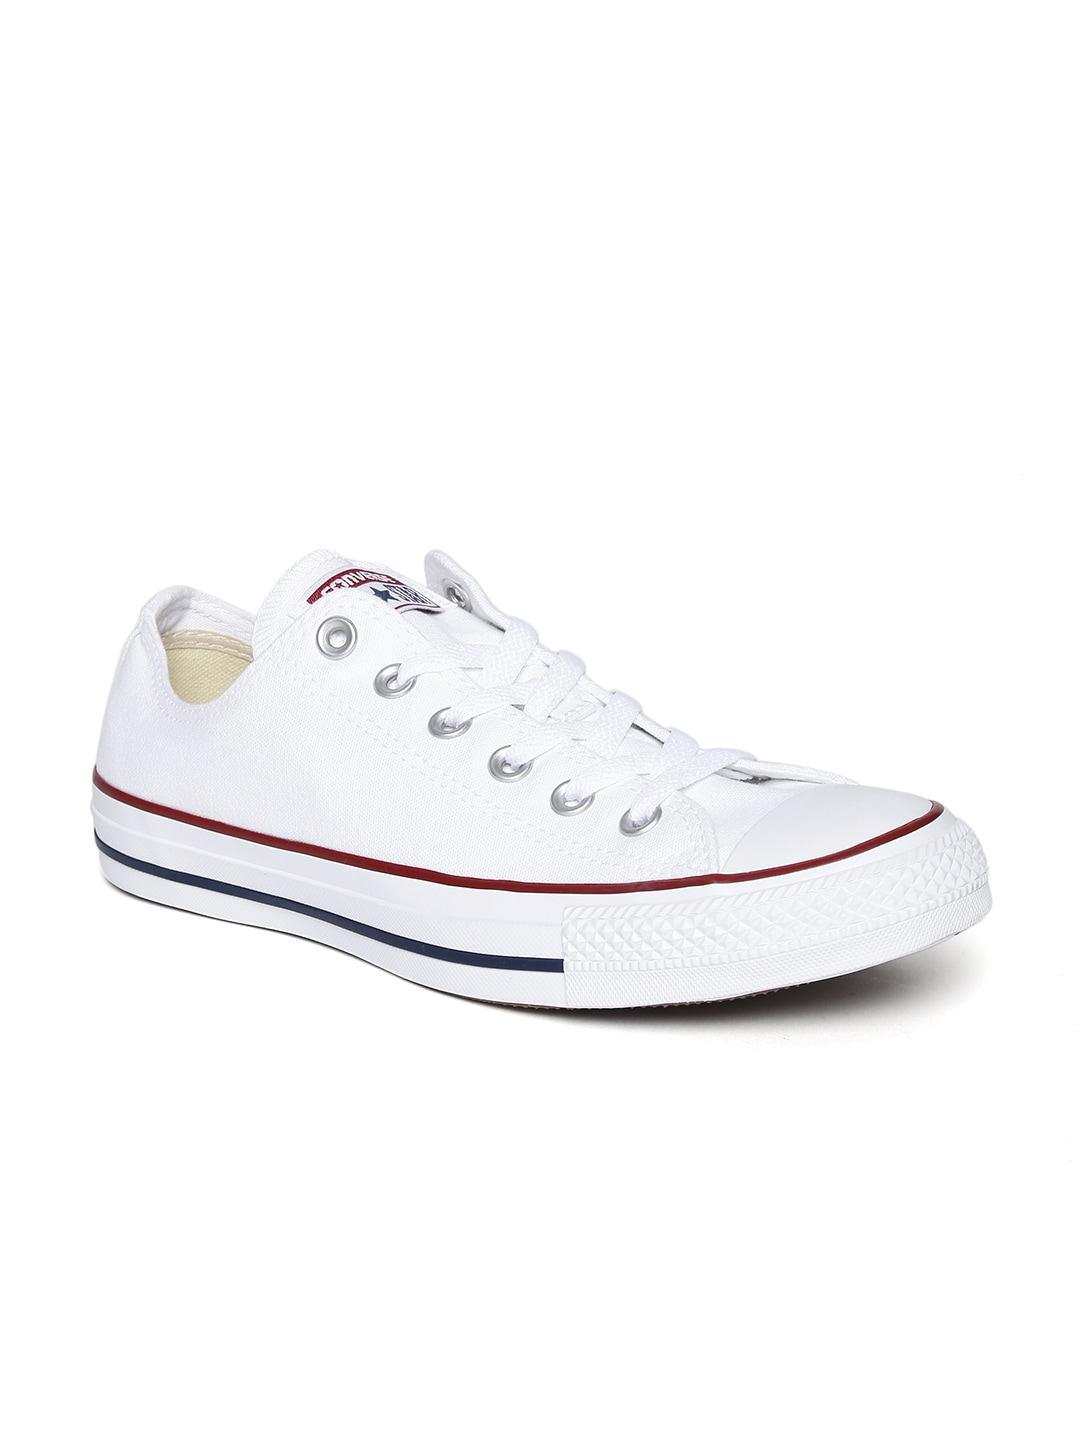 Converse Unisex White Canvas Shoes